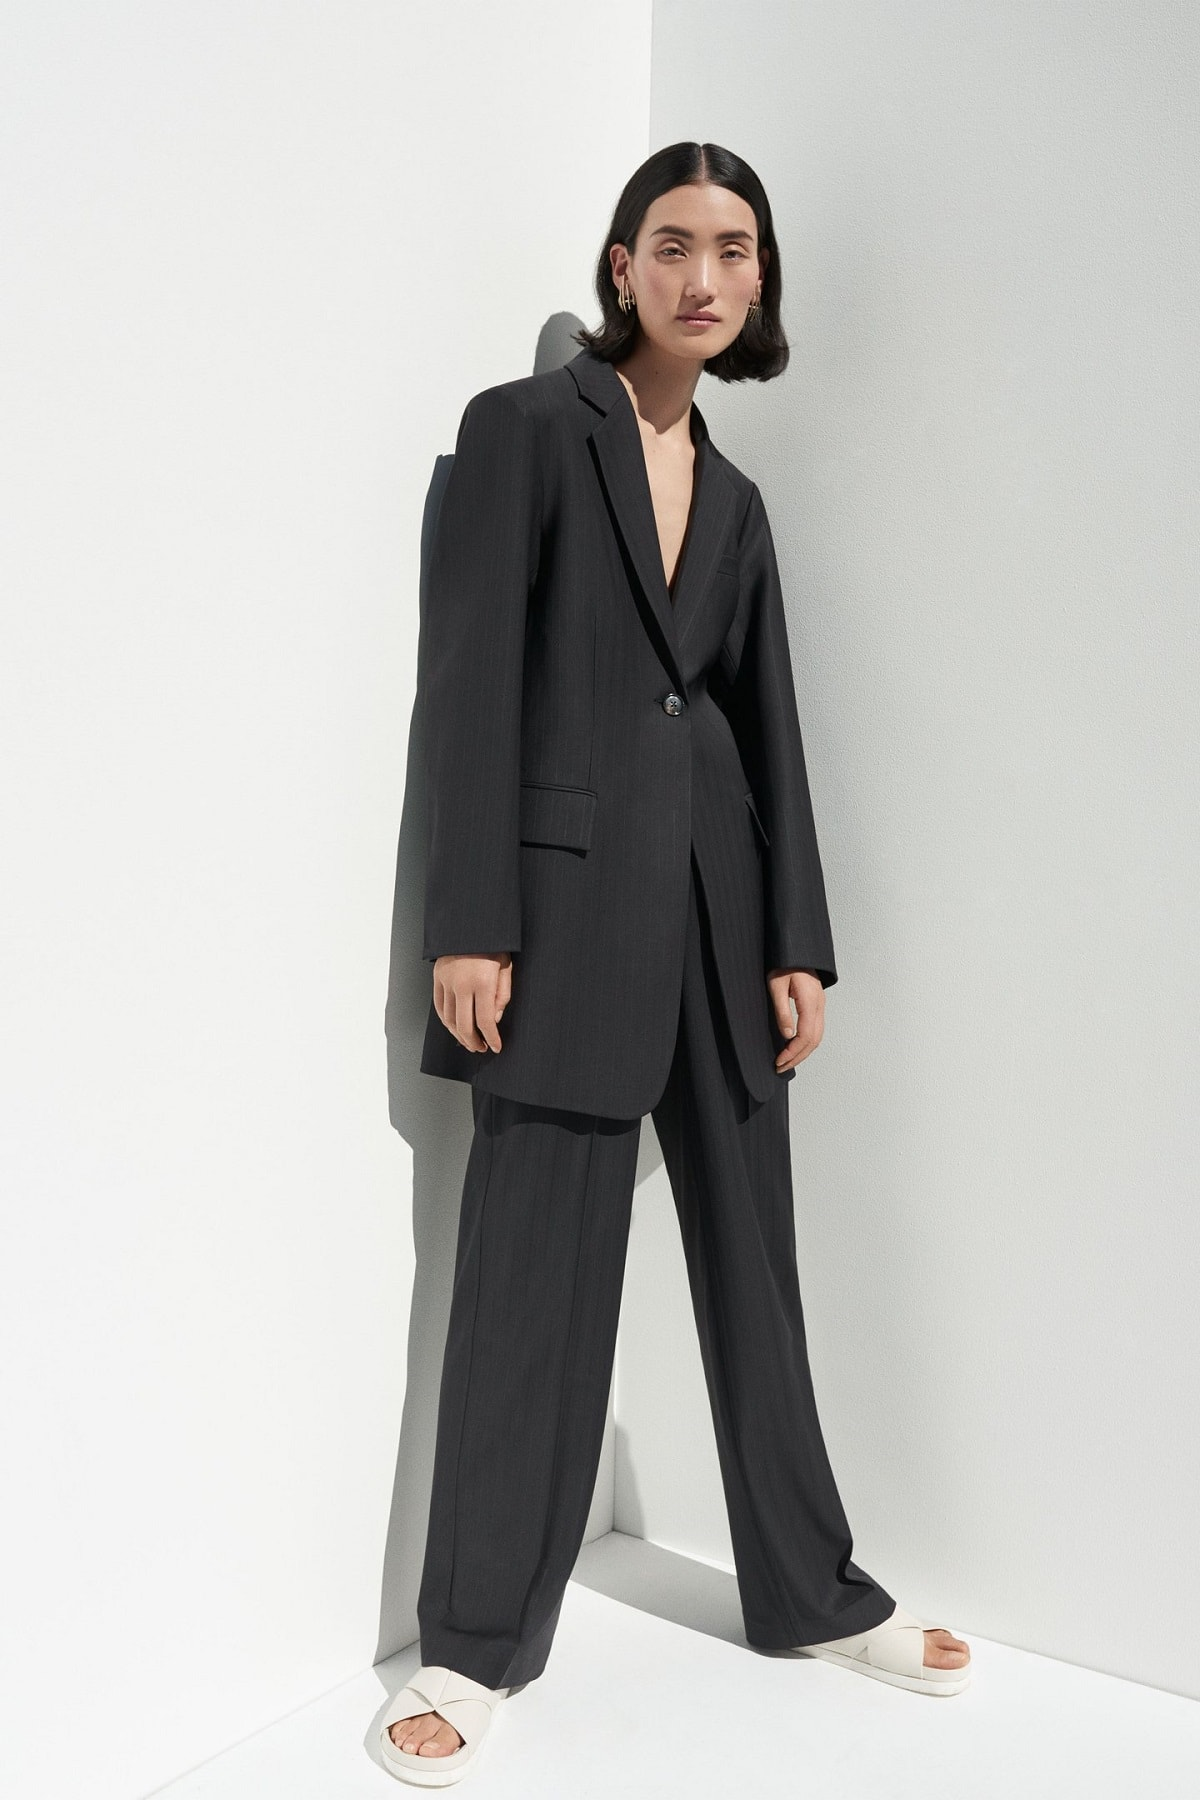 Co Collections Resort 2020 Fashion Collection Photos